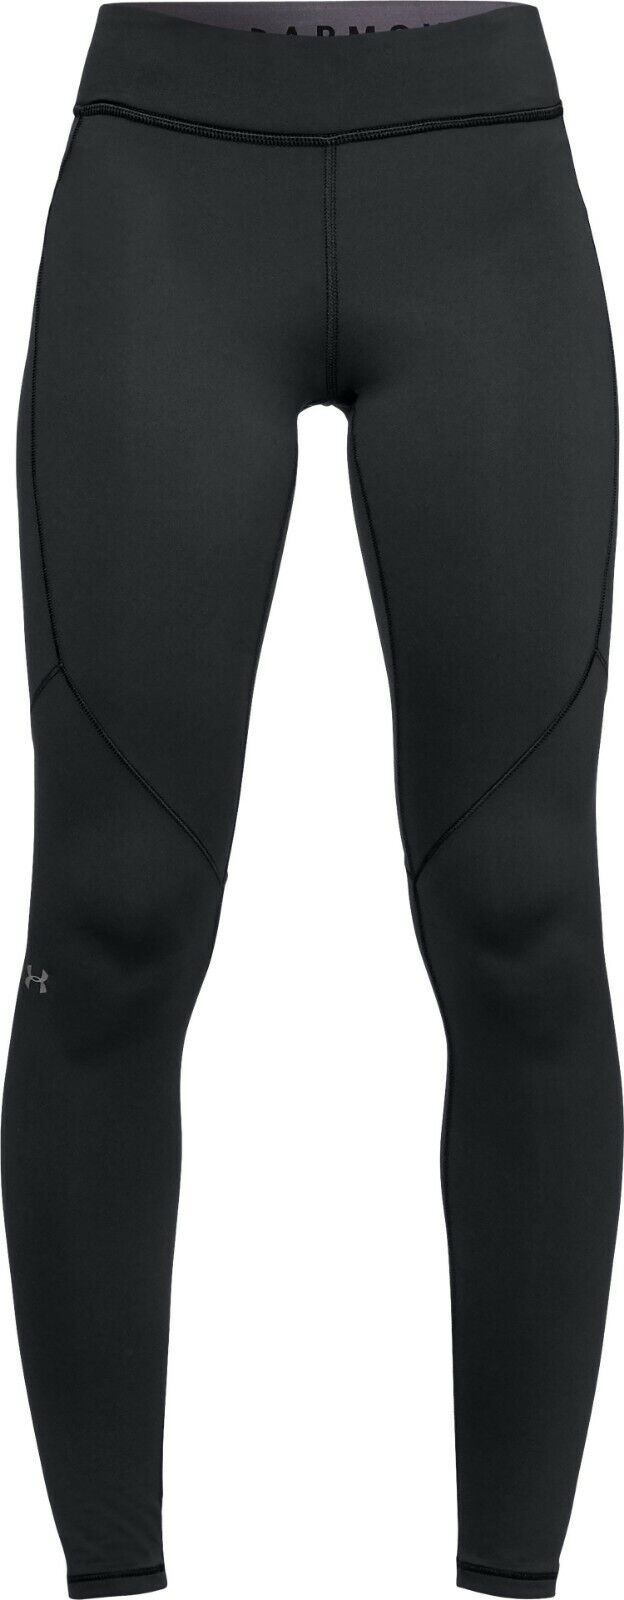 Under Armour Womens Coldgear Armour Legging Under Armour Apparel 1318026